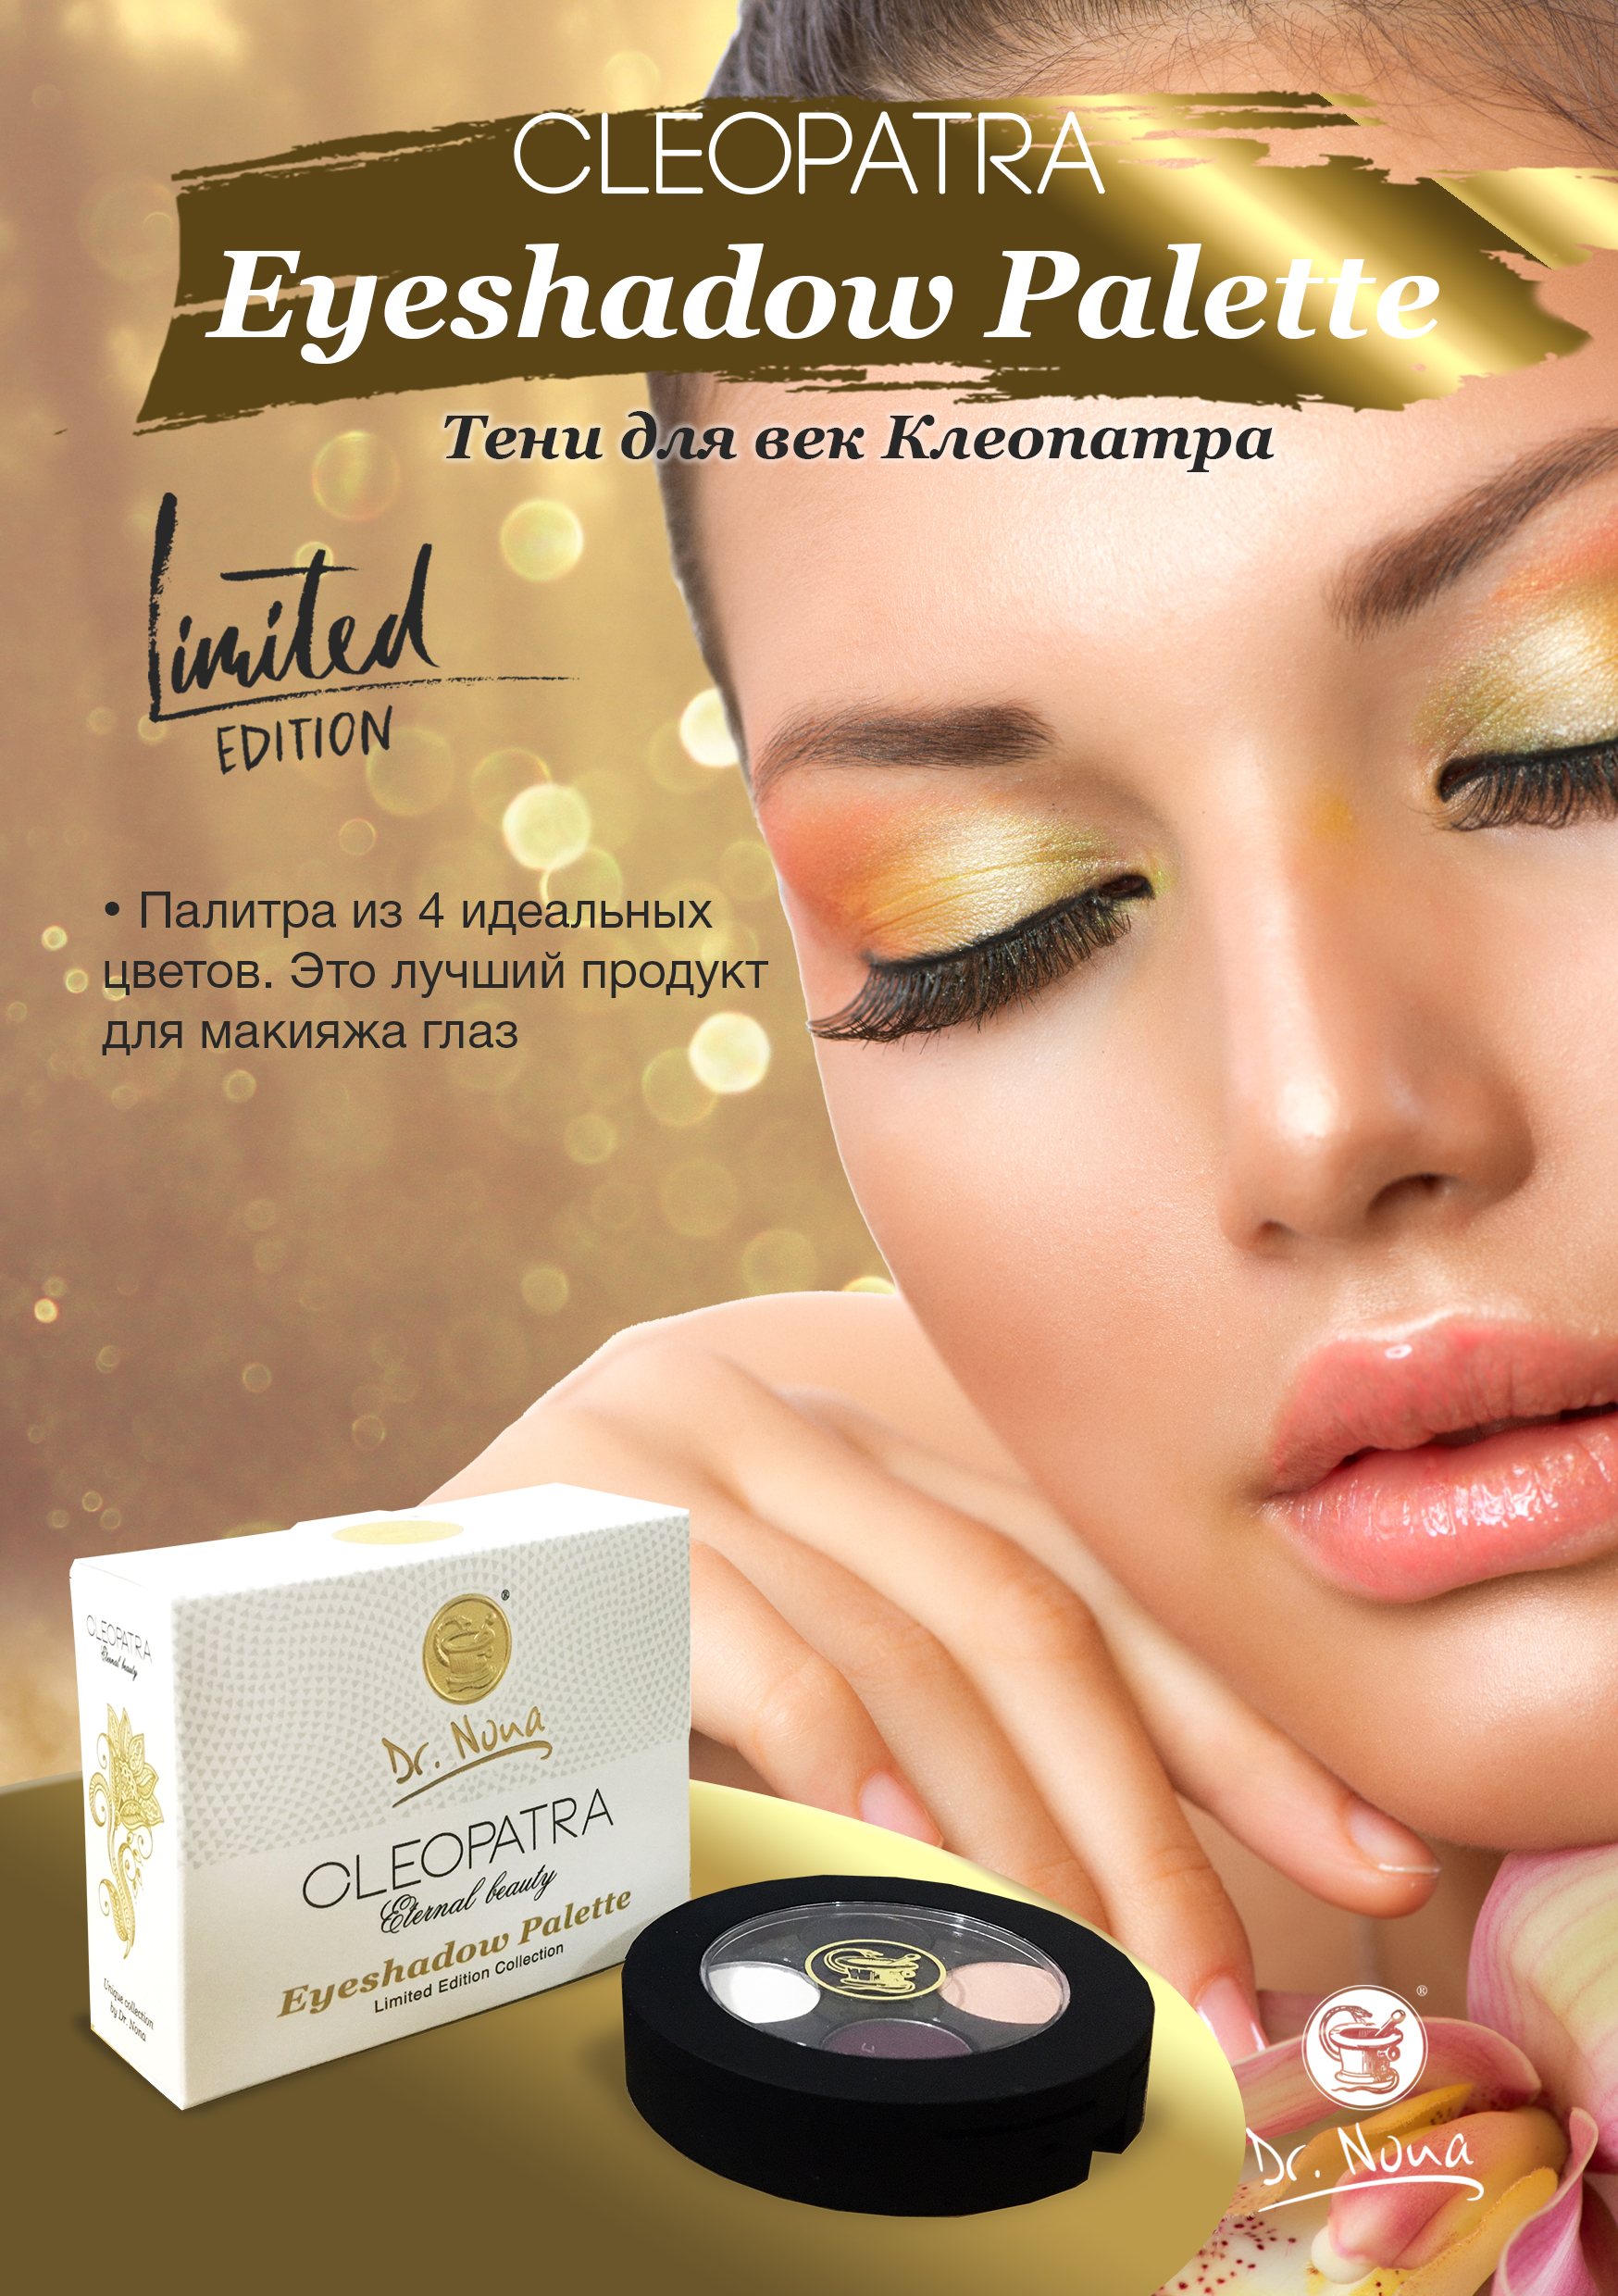 Новый препарат. Тени Клеопатра (Eyeshadow Palette Cleopatra). Limited Edition